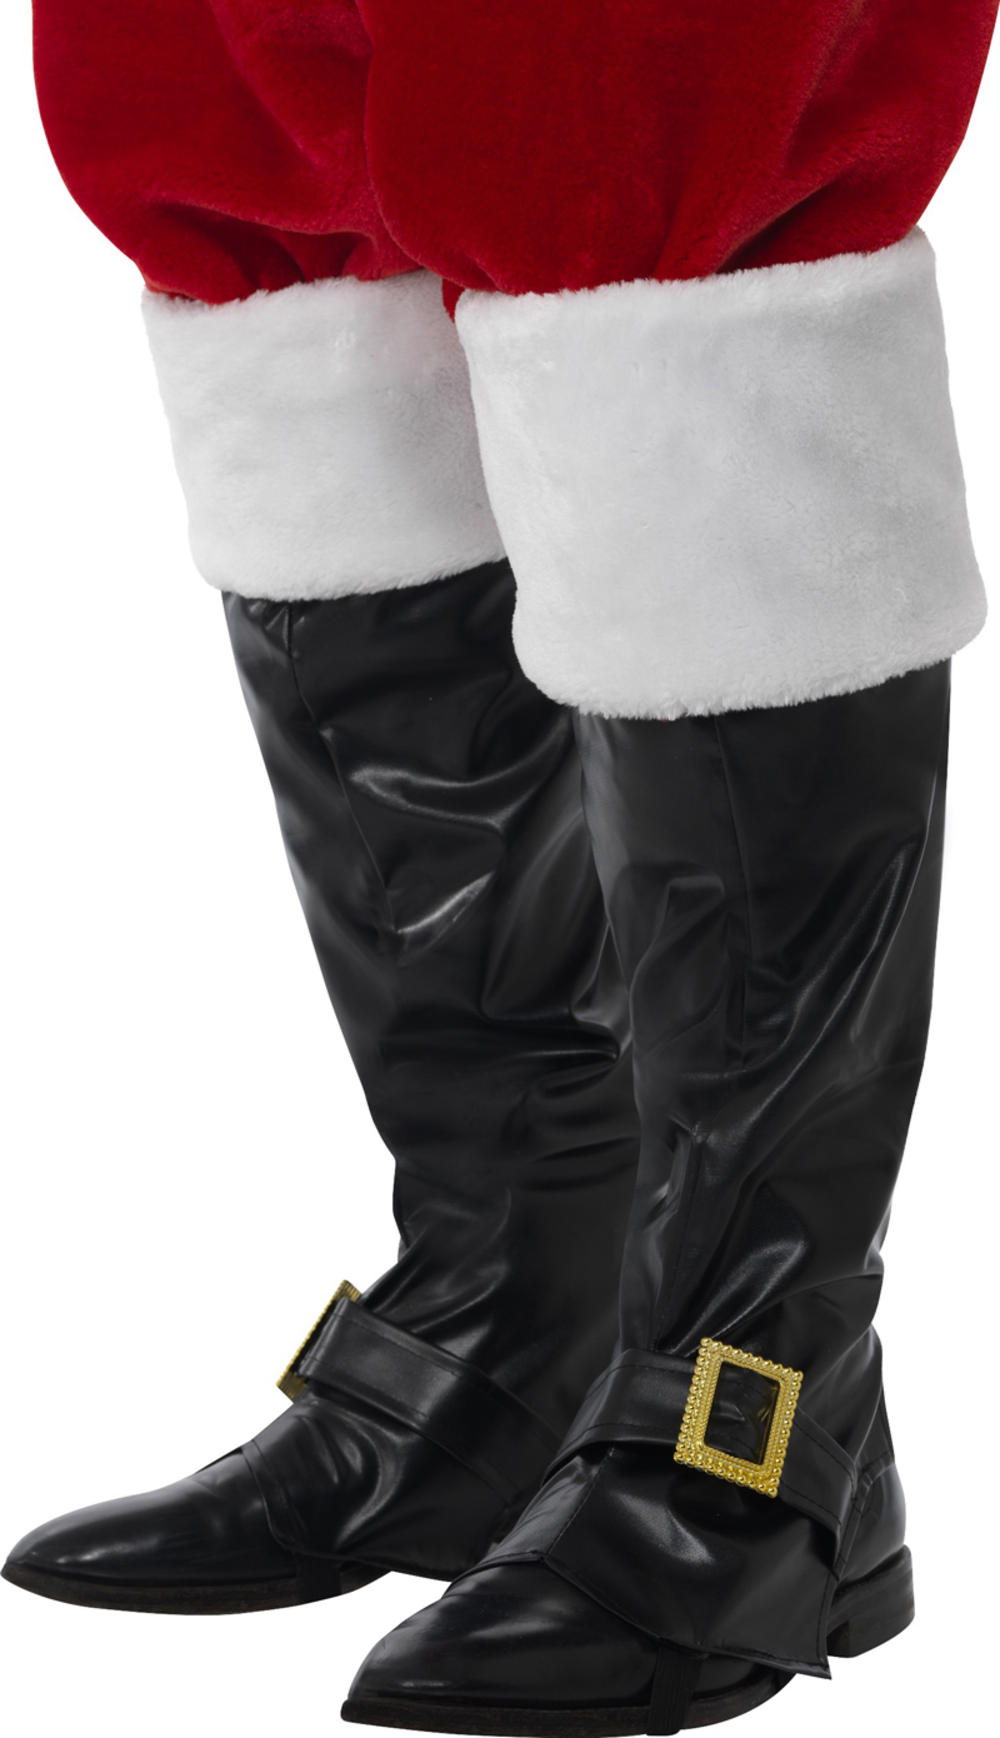 Deluxe Santa Boot Covers